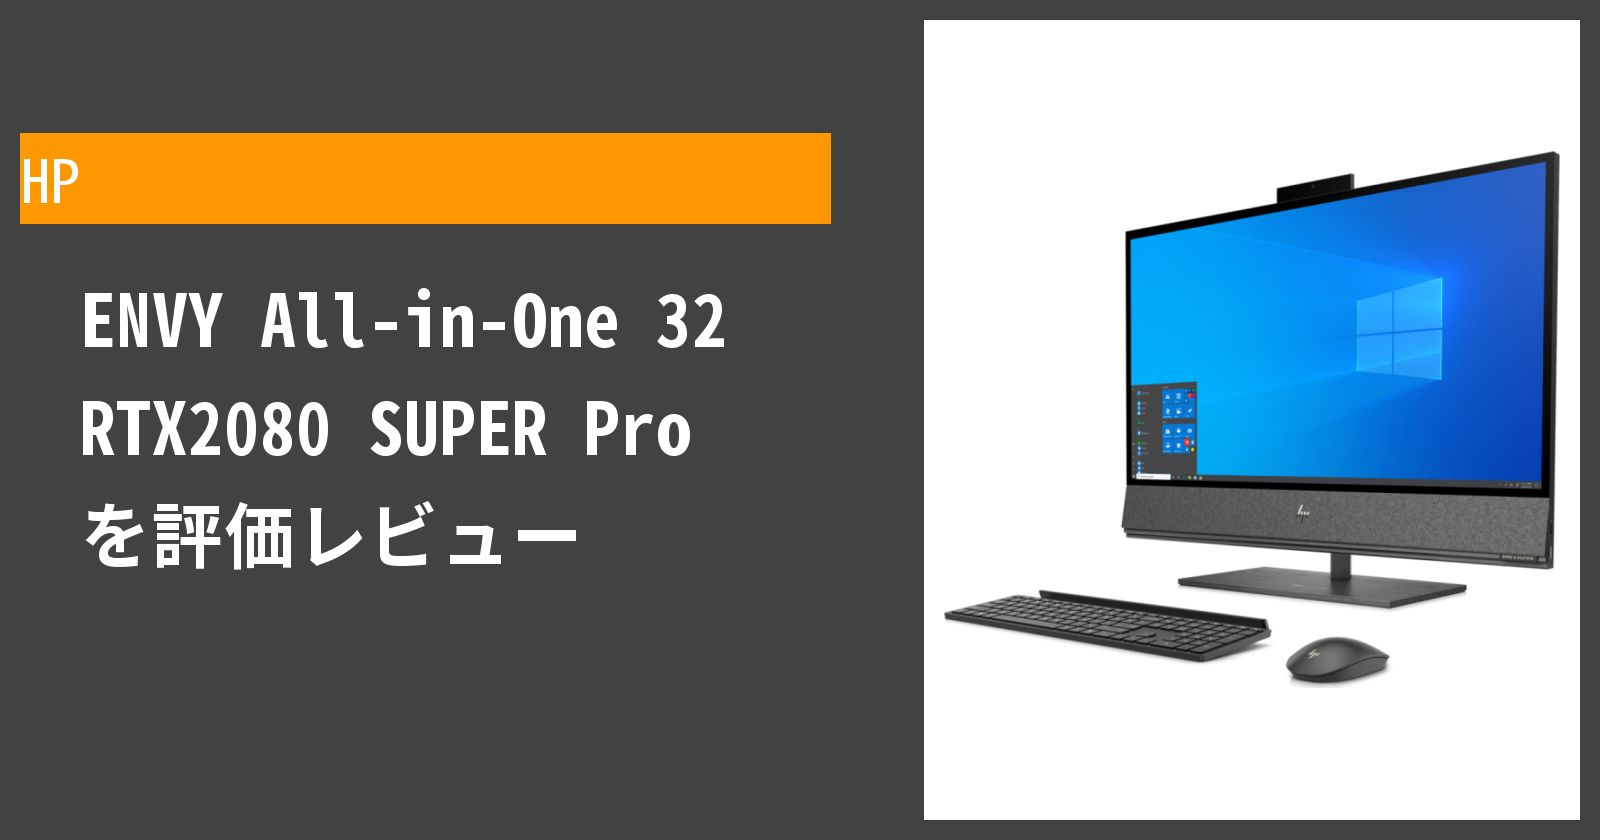 ENVY All-in-One 32 RTX2080 SUPER Proを徹底評価